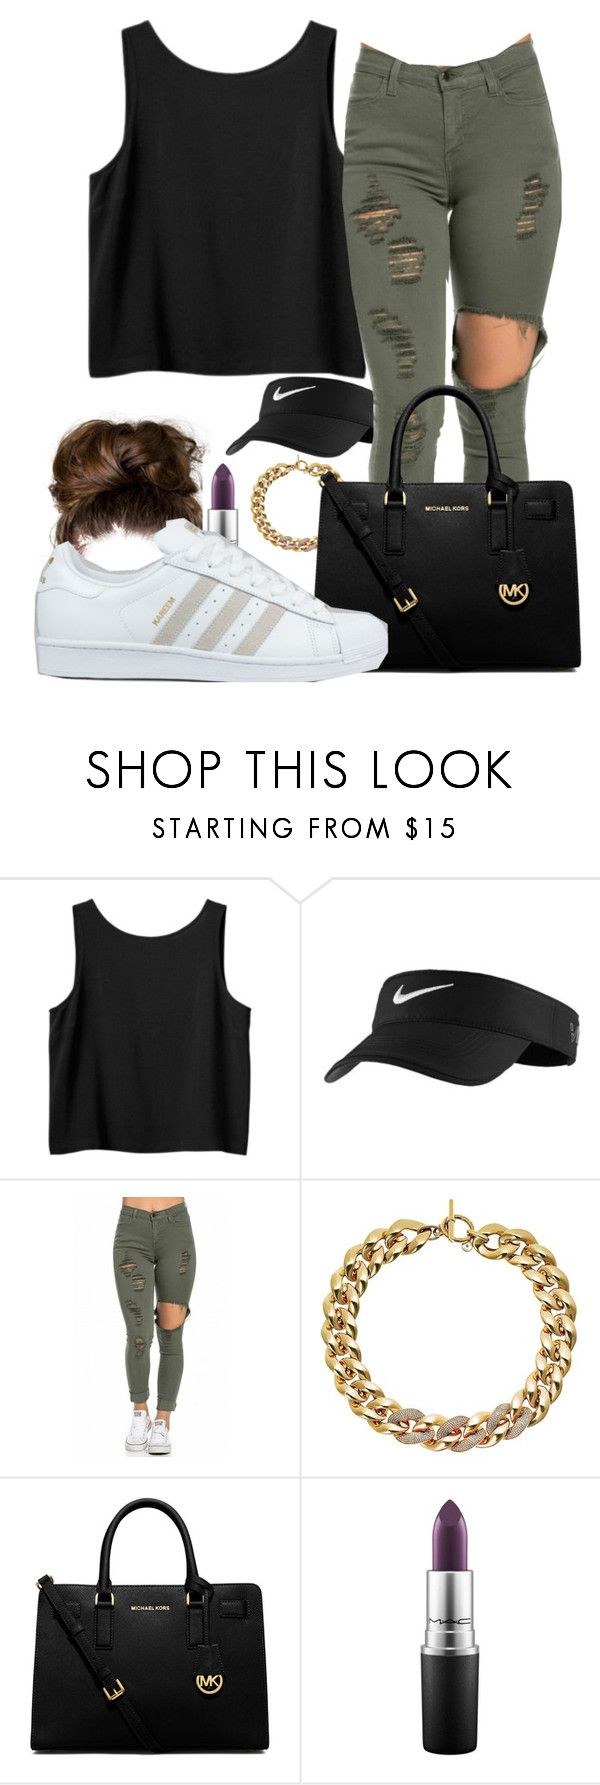 """Something simple"" by kam95502 on Polyvore featuring Monki, NIKE, Michael Kors, MICHAEL Michael Kors, MAC Cosmetics, adidas, women's clothing, women's fashion, women and female"